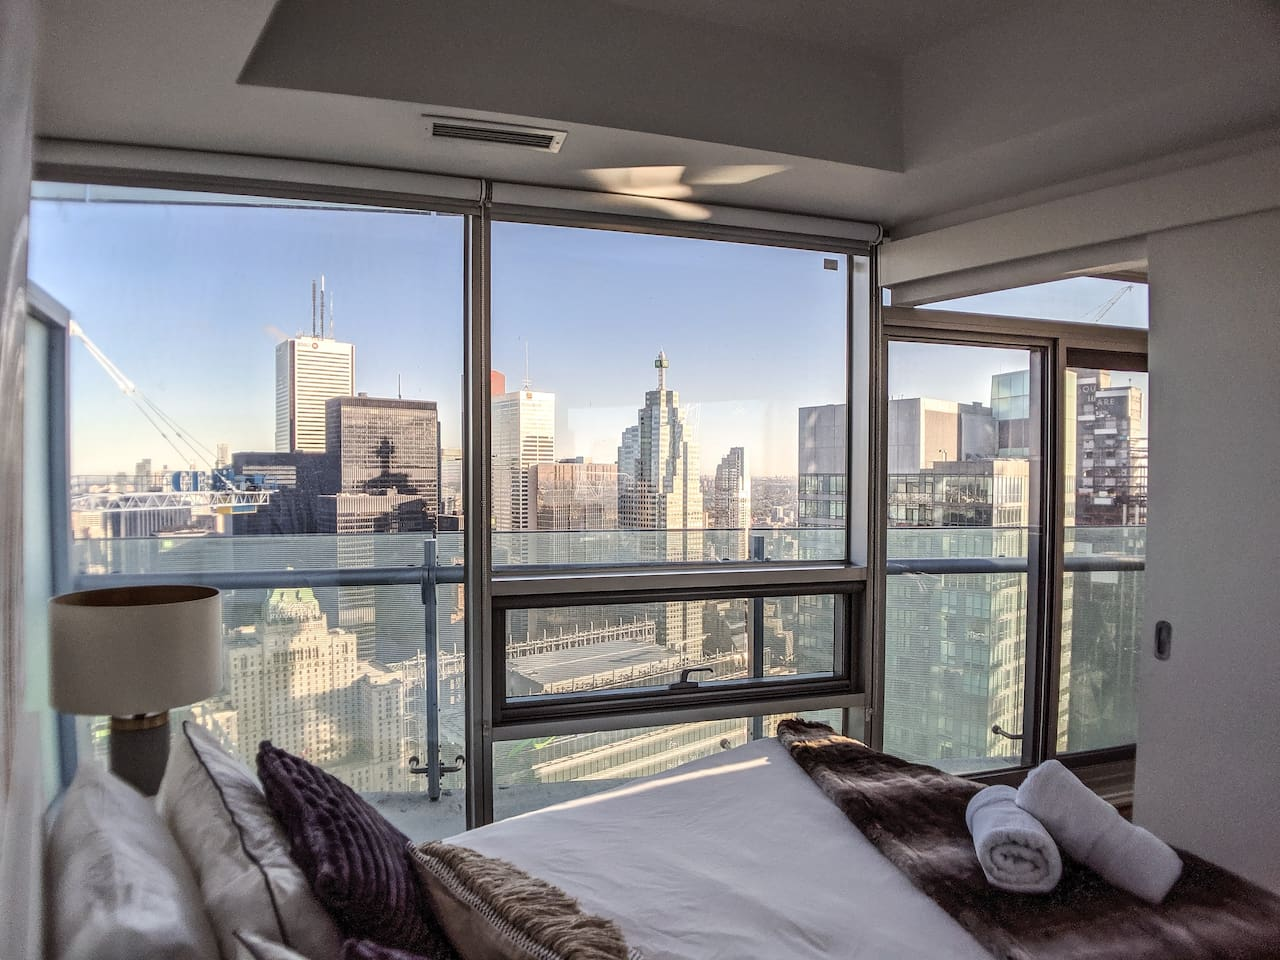 Wake up to a Stunning View!